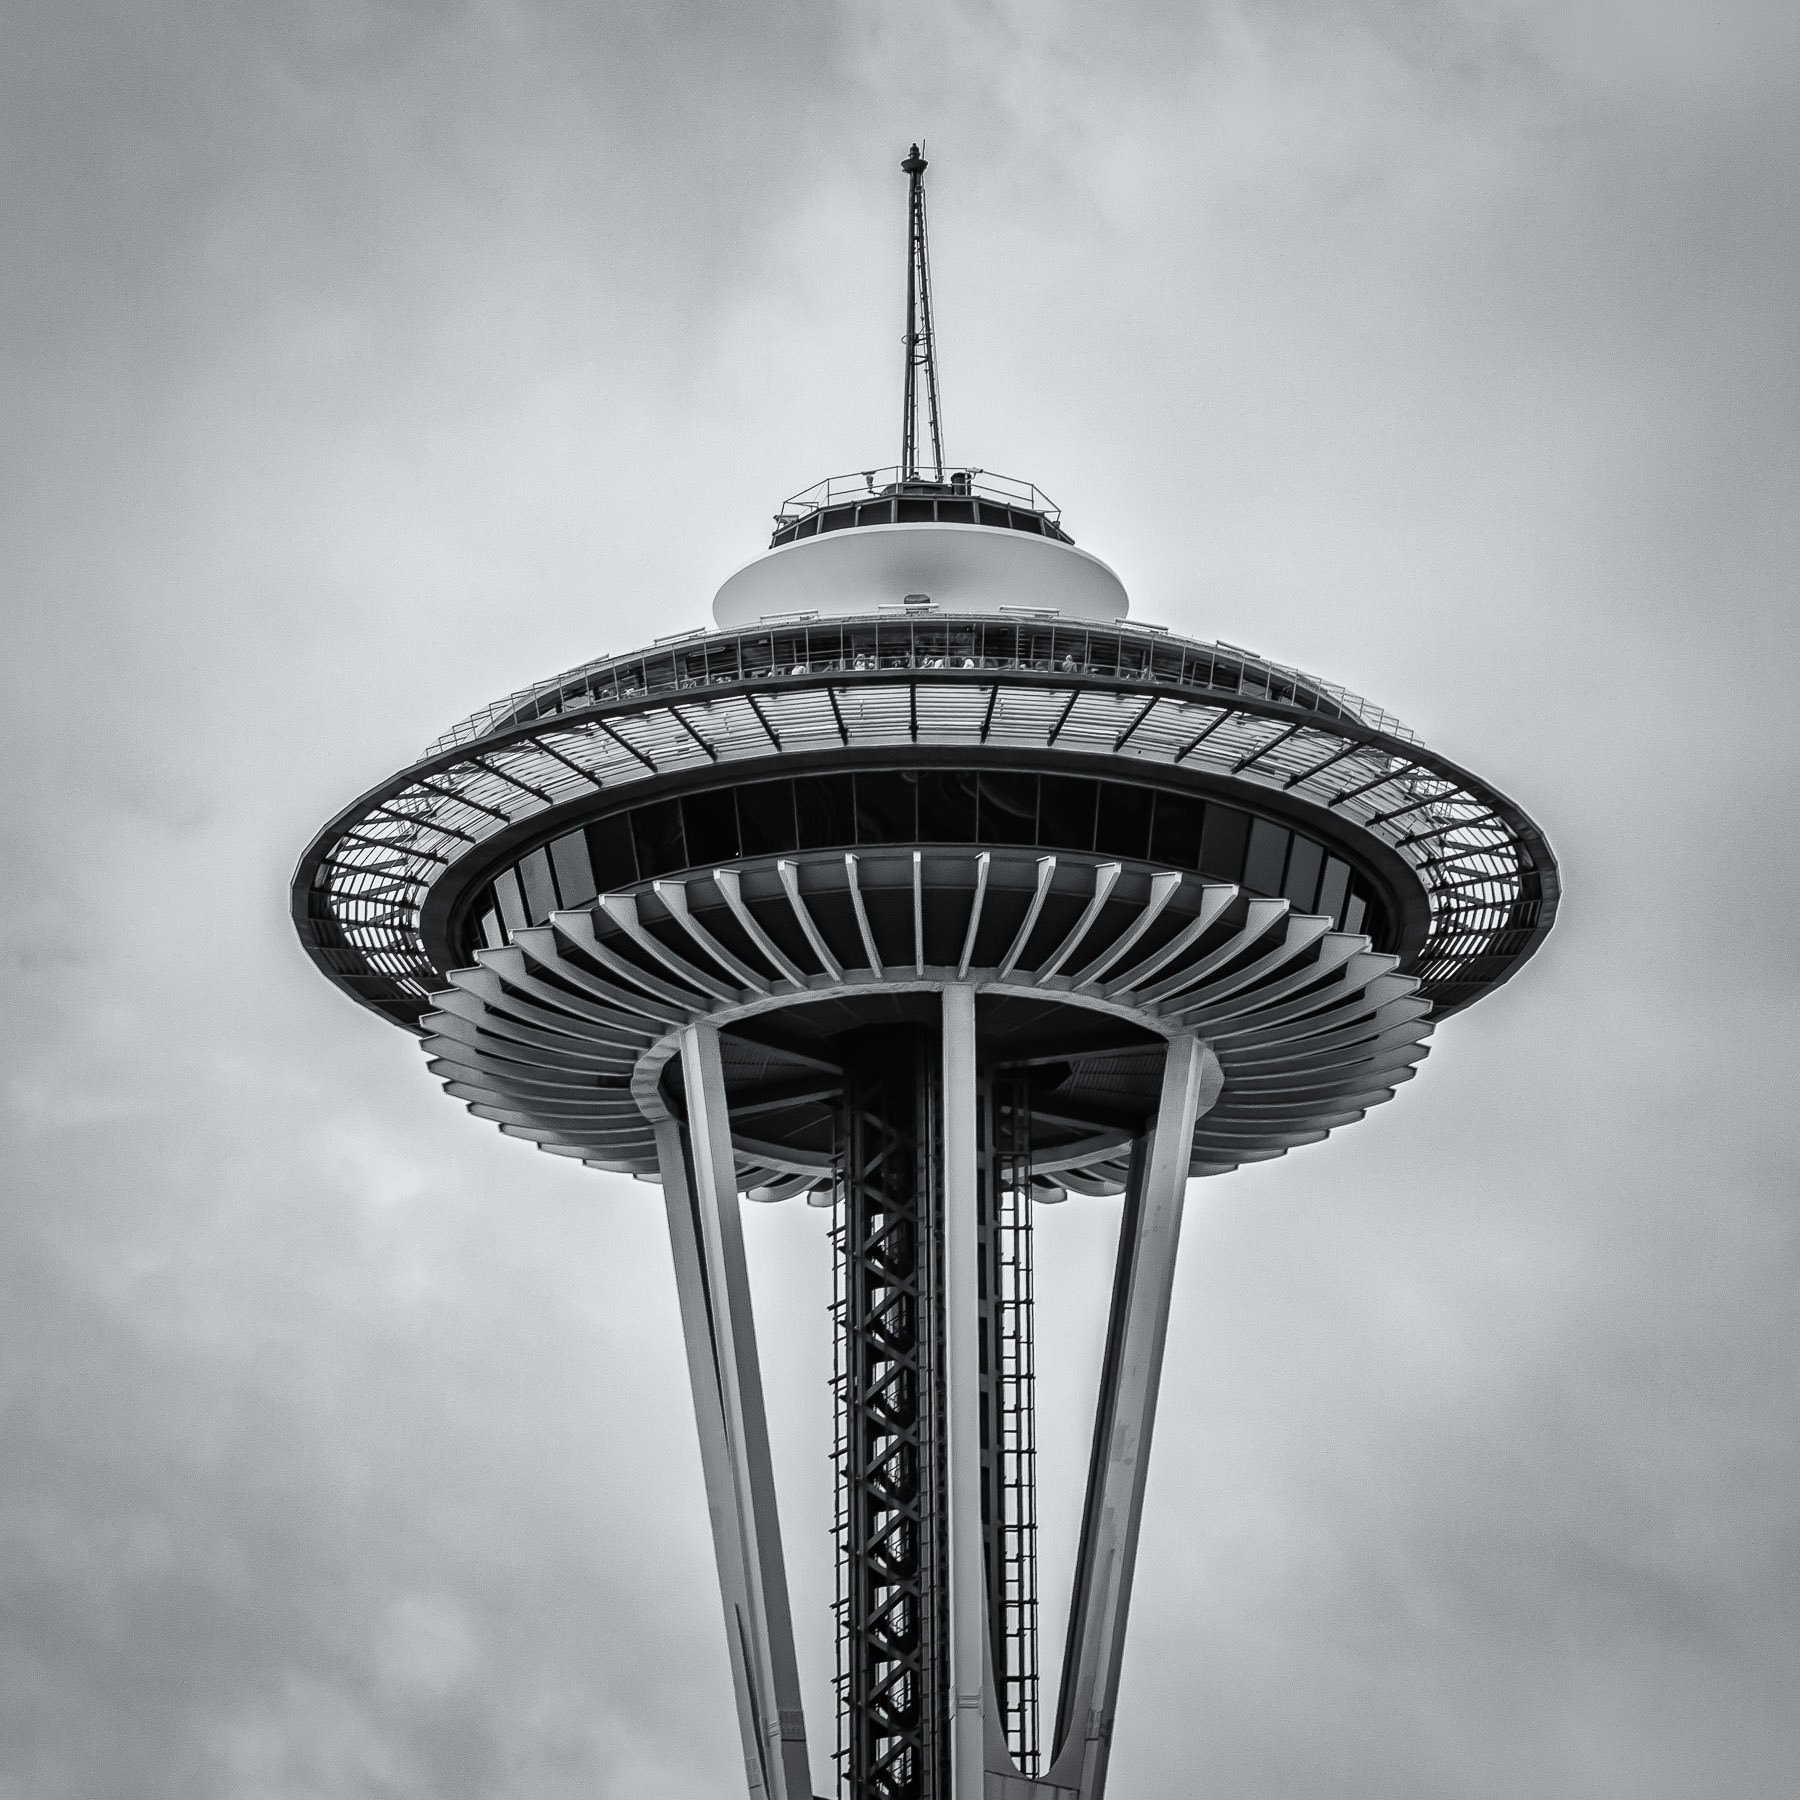 The Seattle Space Needle rises into the overcast Washington sky.